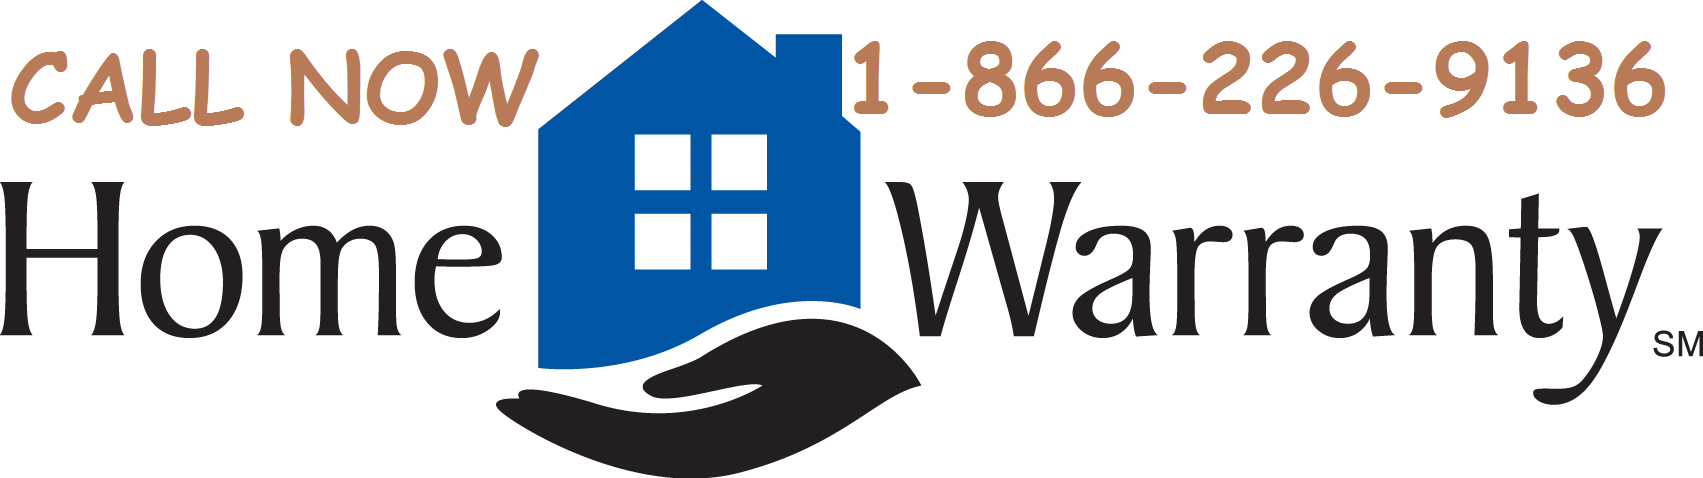 Low Cost Home Warranty with 24*7 Emergency Services Call Now +1-866-226-9136